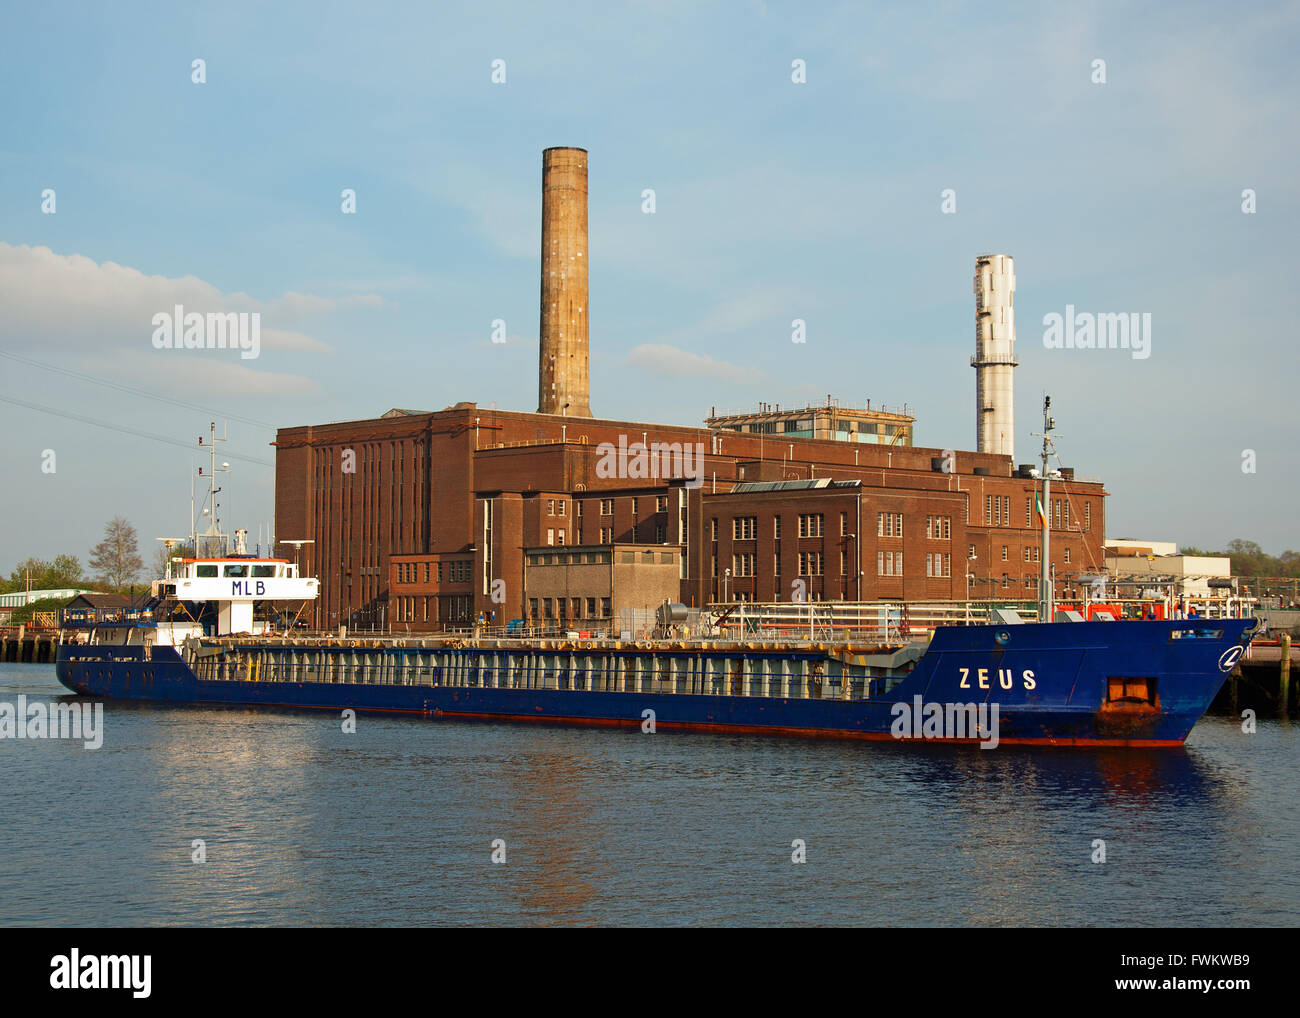 General cargo ship Zeus approaches the city quays in Cork, Ireland. - Stock Image